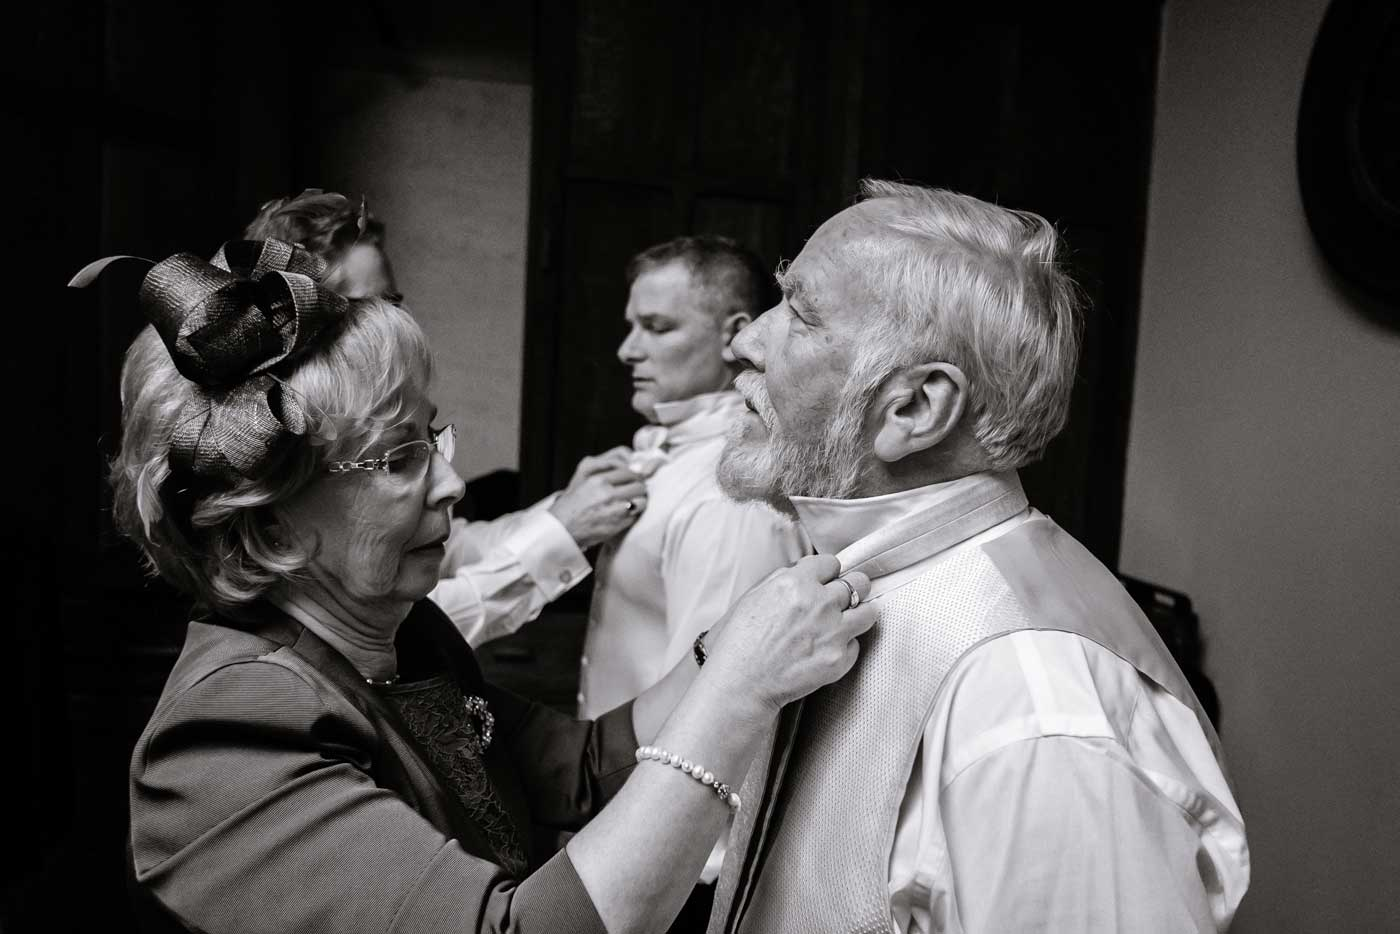 Men having their cravats tied at Stanbrook Abbey by Stanbrook Abbey wedding photographer Clive Blair Photography